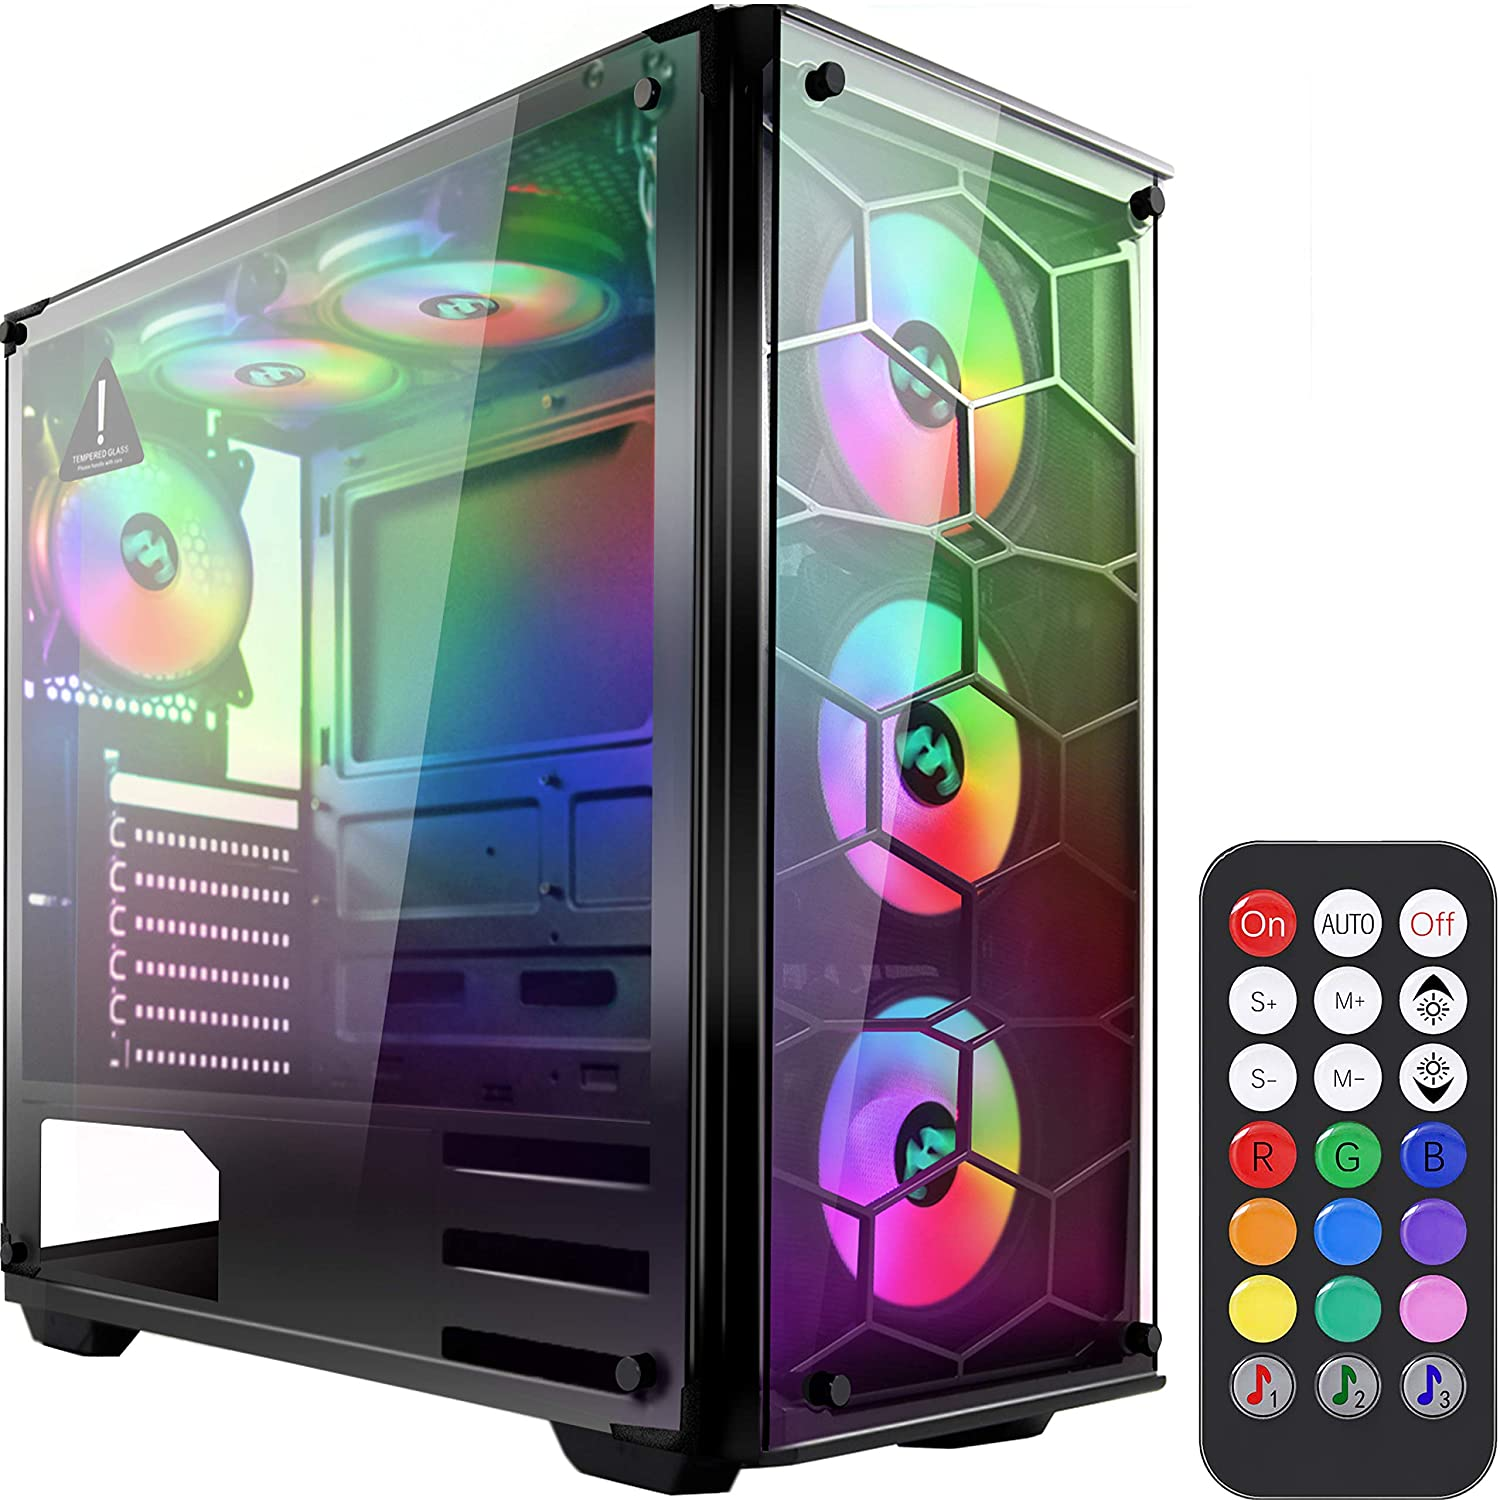 MUSETEX Phantom Black ATX Mid-Tower Desktop Computer Gaming Case USB 3.0 Ports Tempered Glass Windows with 6pcs 120mm Voice Control LED RGB Fans Pre-Installed, Remote Control(907)